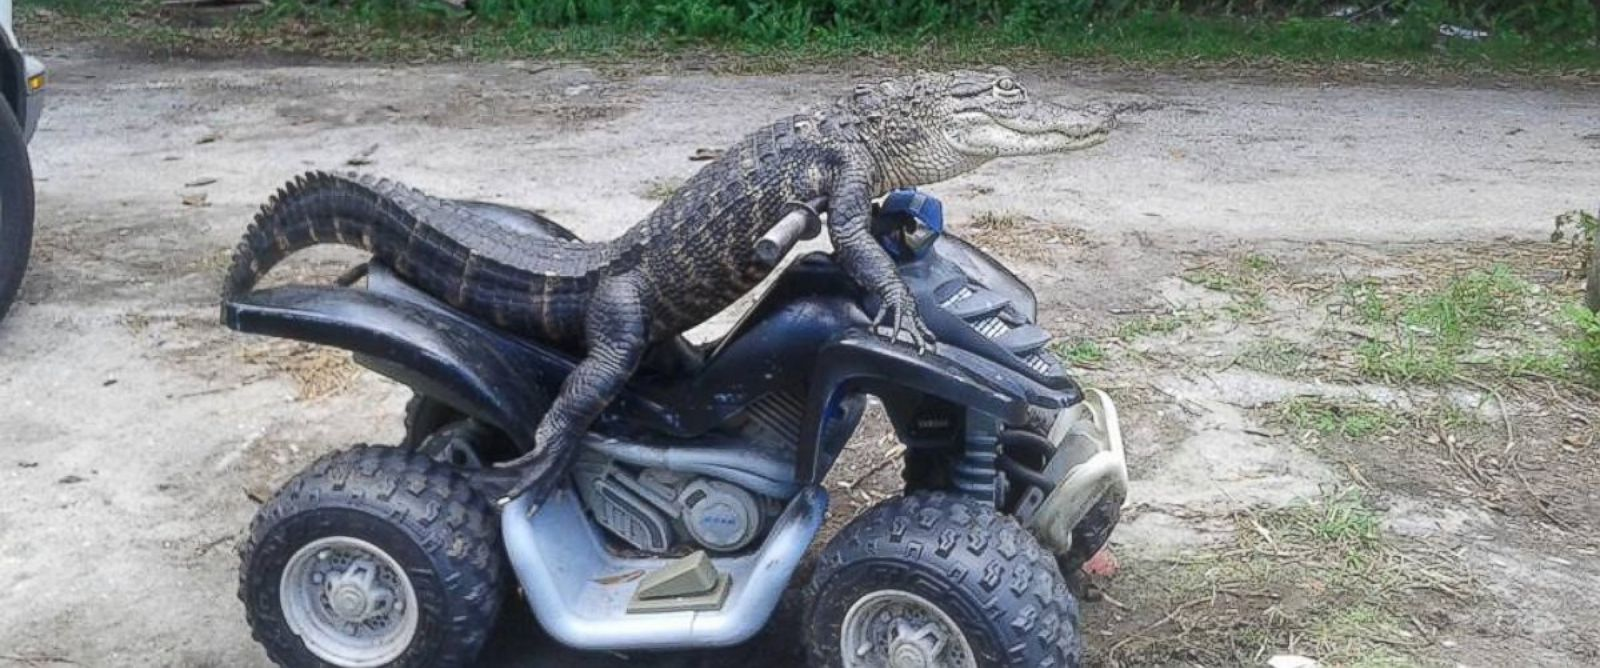 """PHOTO:Mary Thorn of Lakeland, Florida, says her pet alligator Rambo, pictured here, is """"trained"""" and """"not like normal gators."""""""